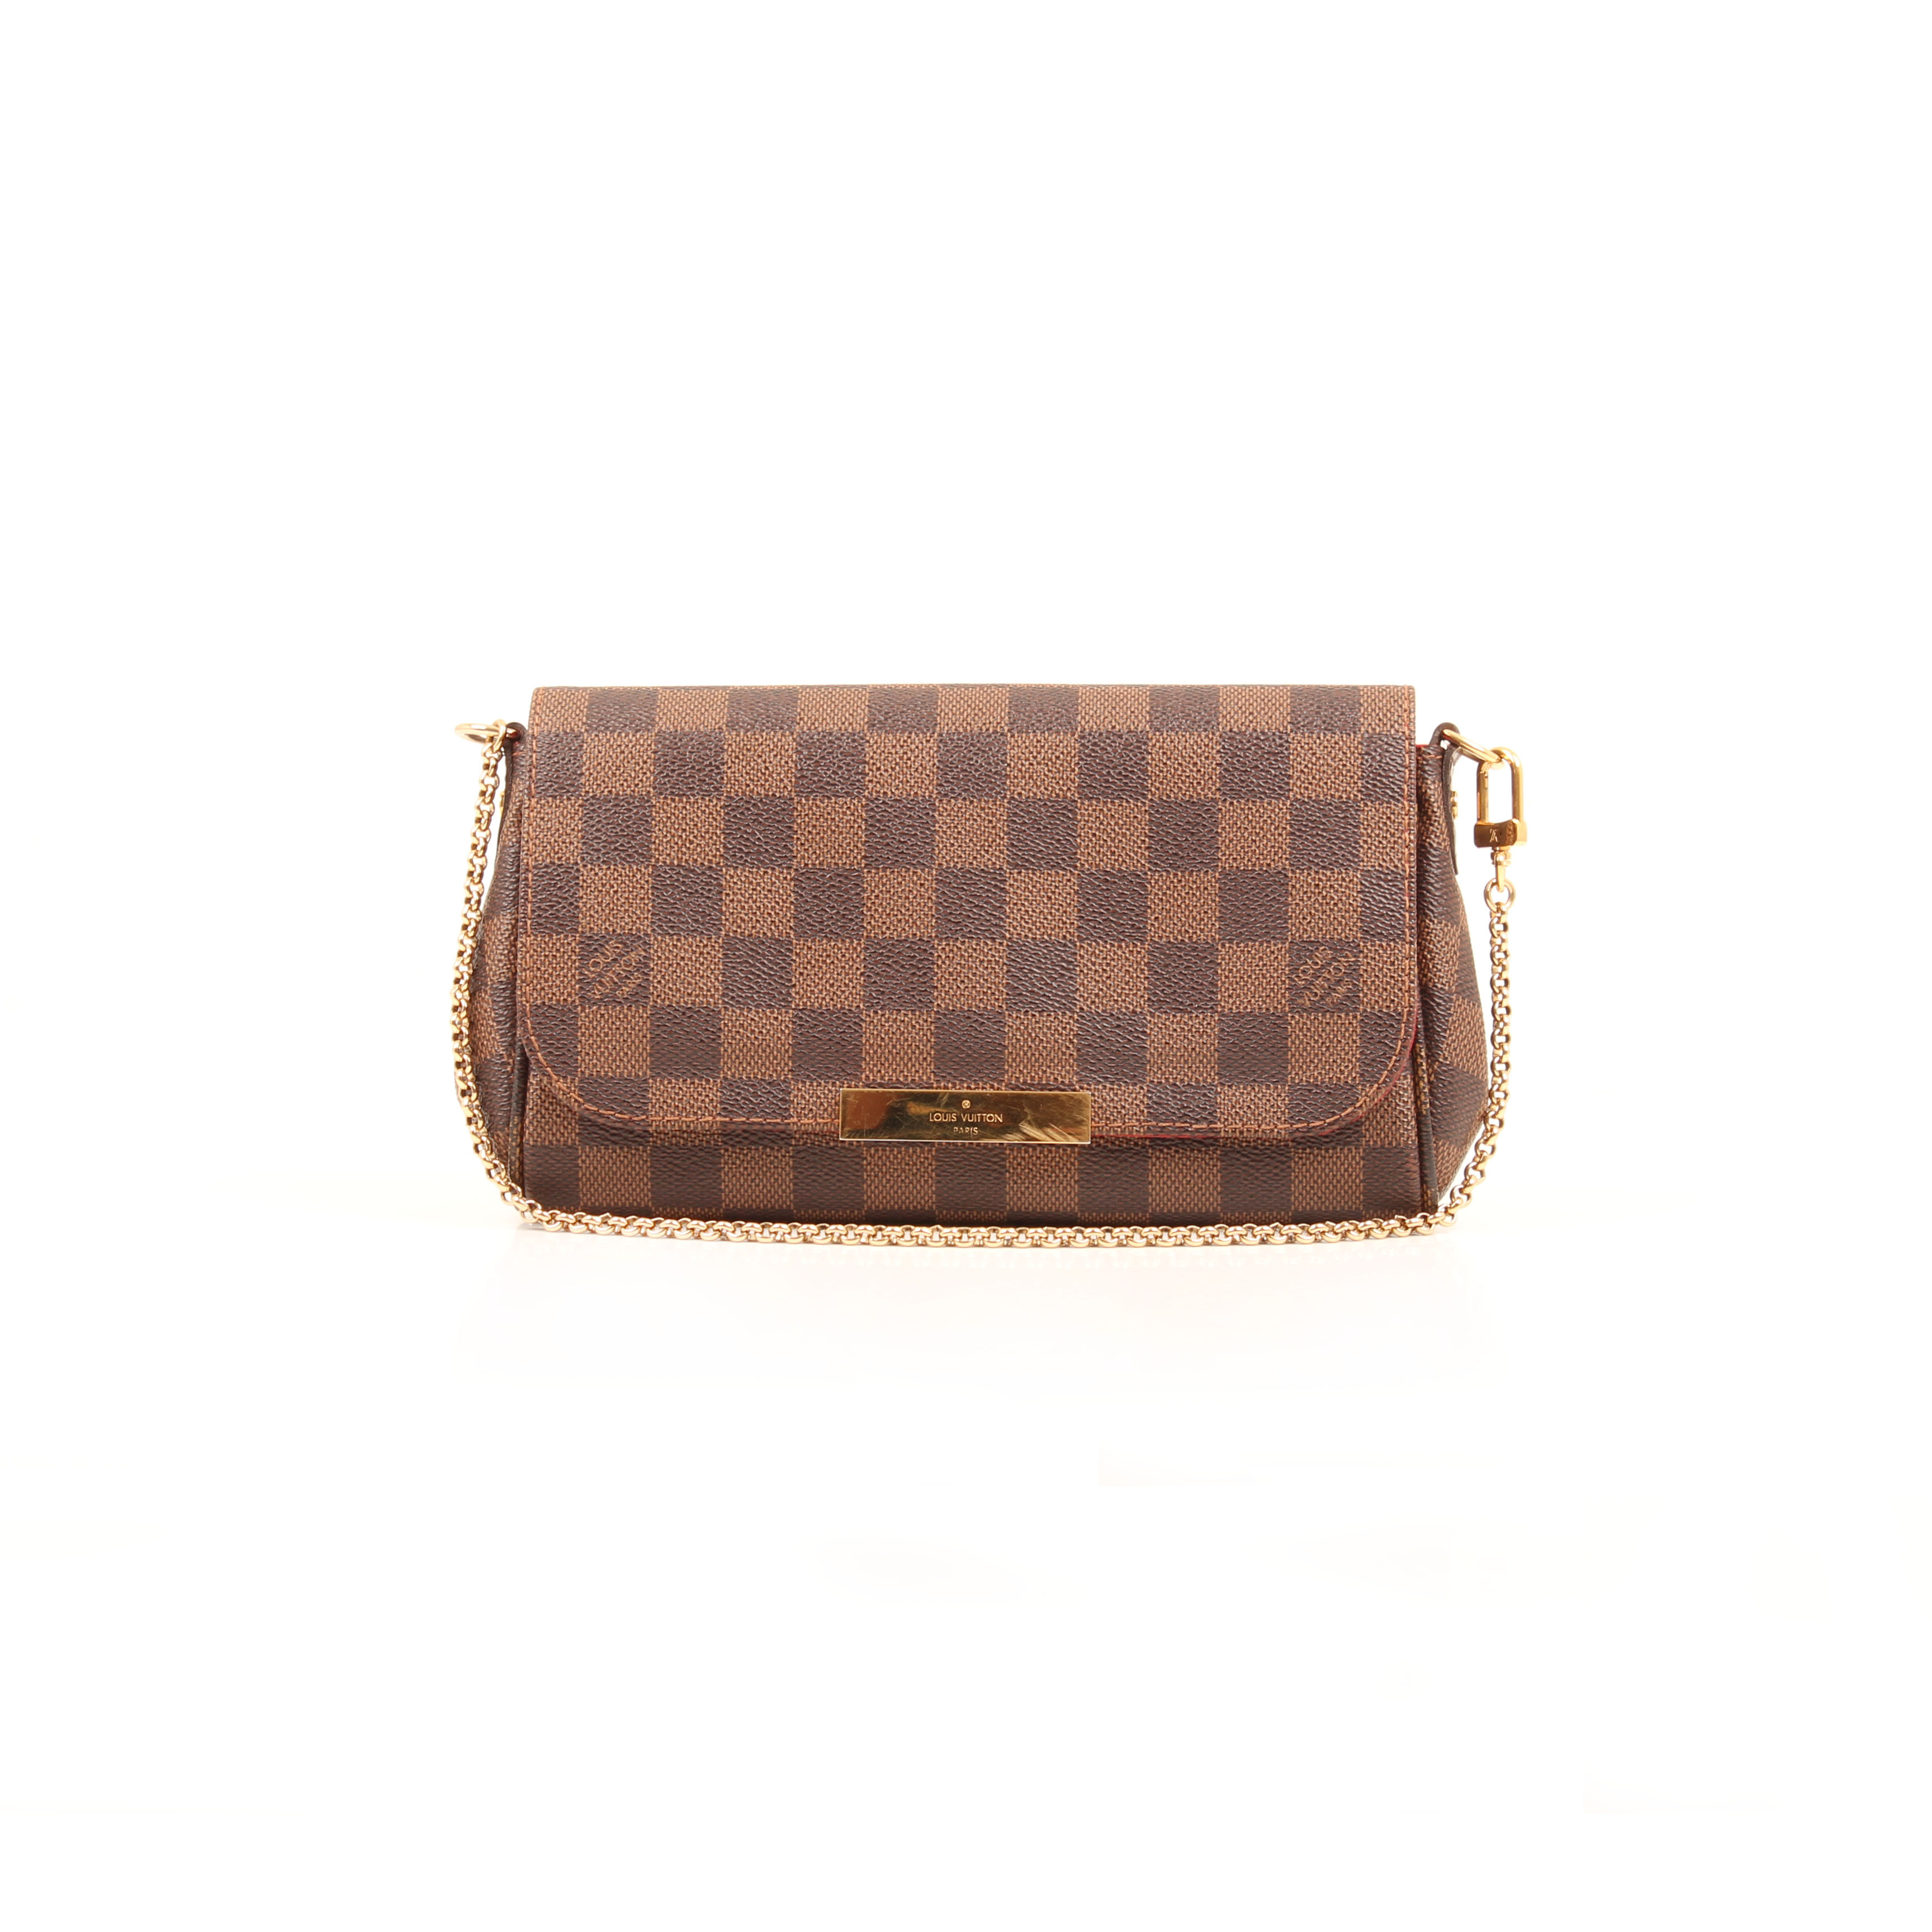 clutch louis vuitton favorite pm damier ebene front